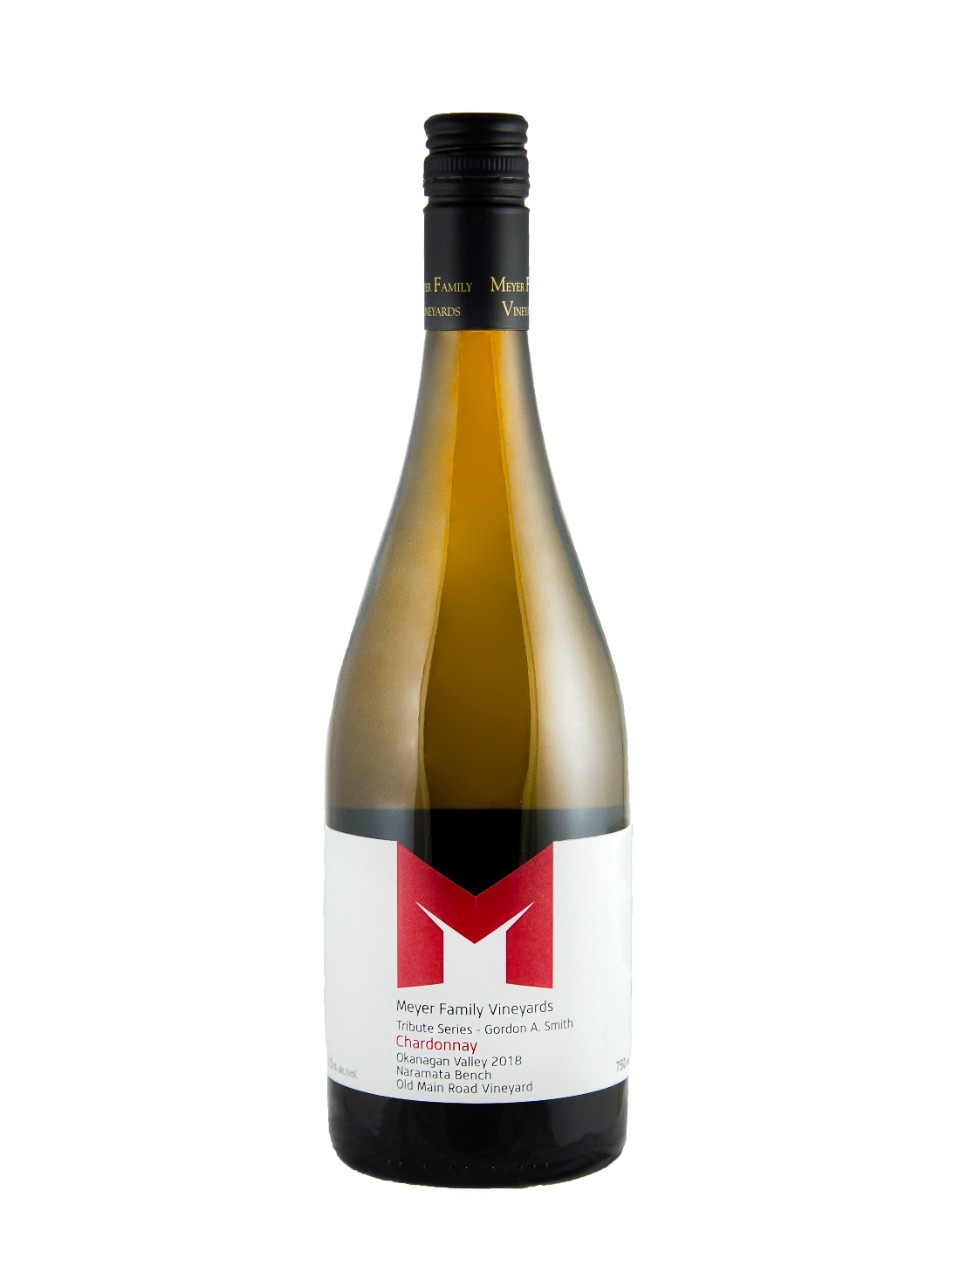 Meyer Tribute Series Old Main Road Chardonnay 2018 from LCBO